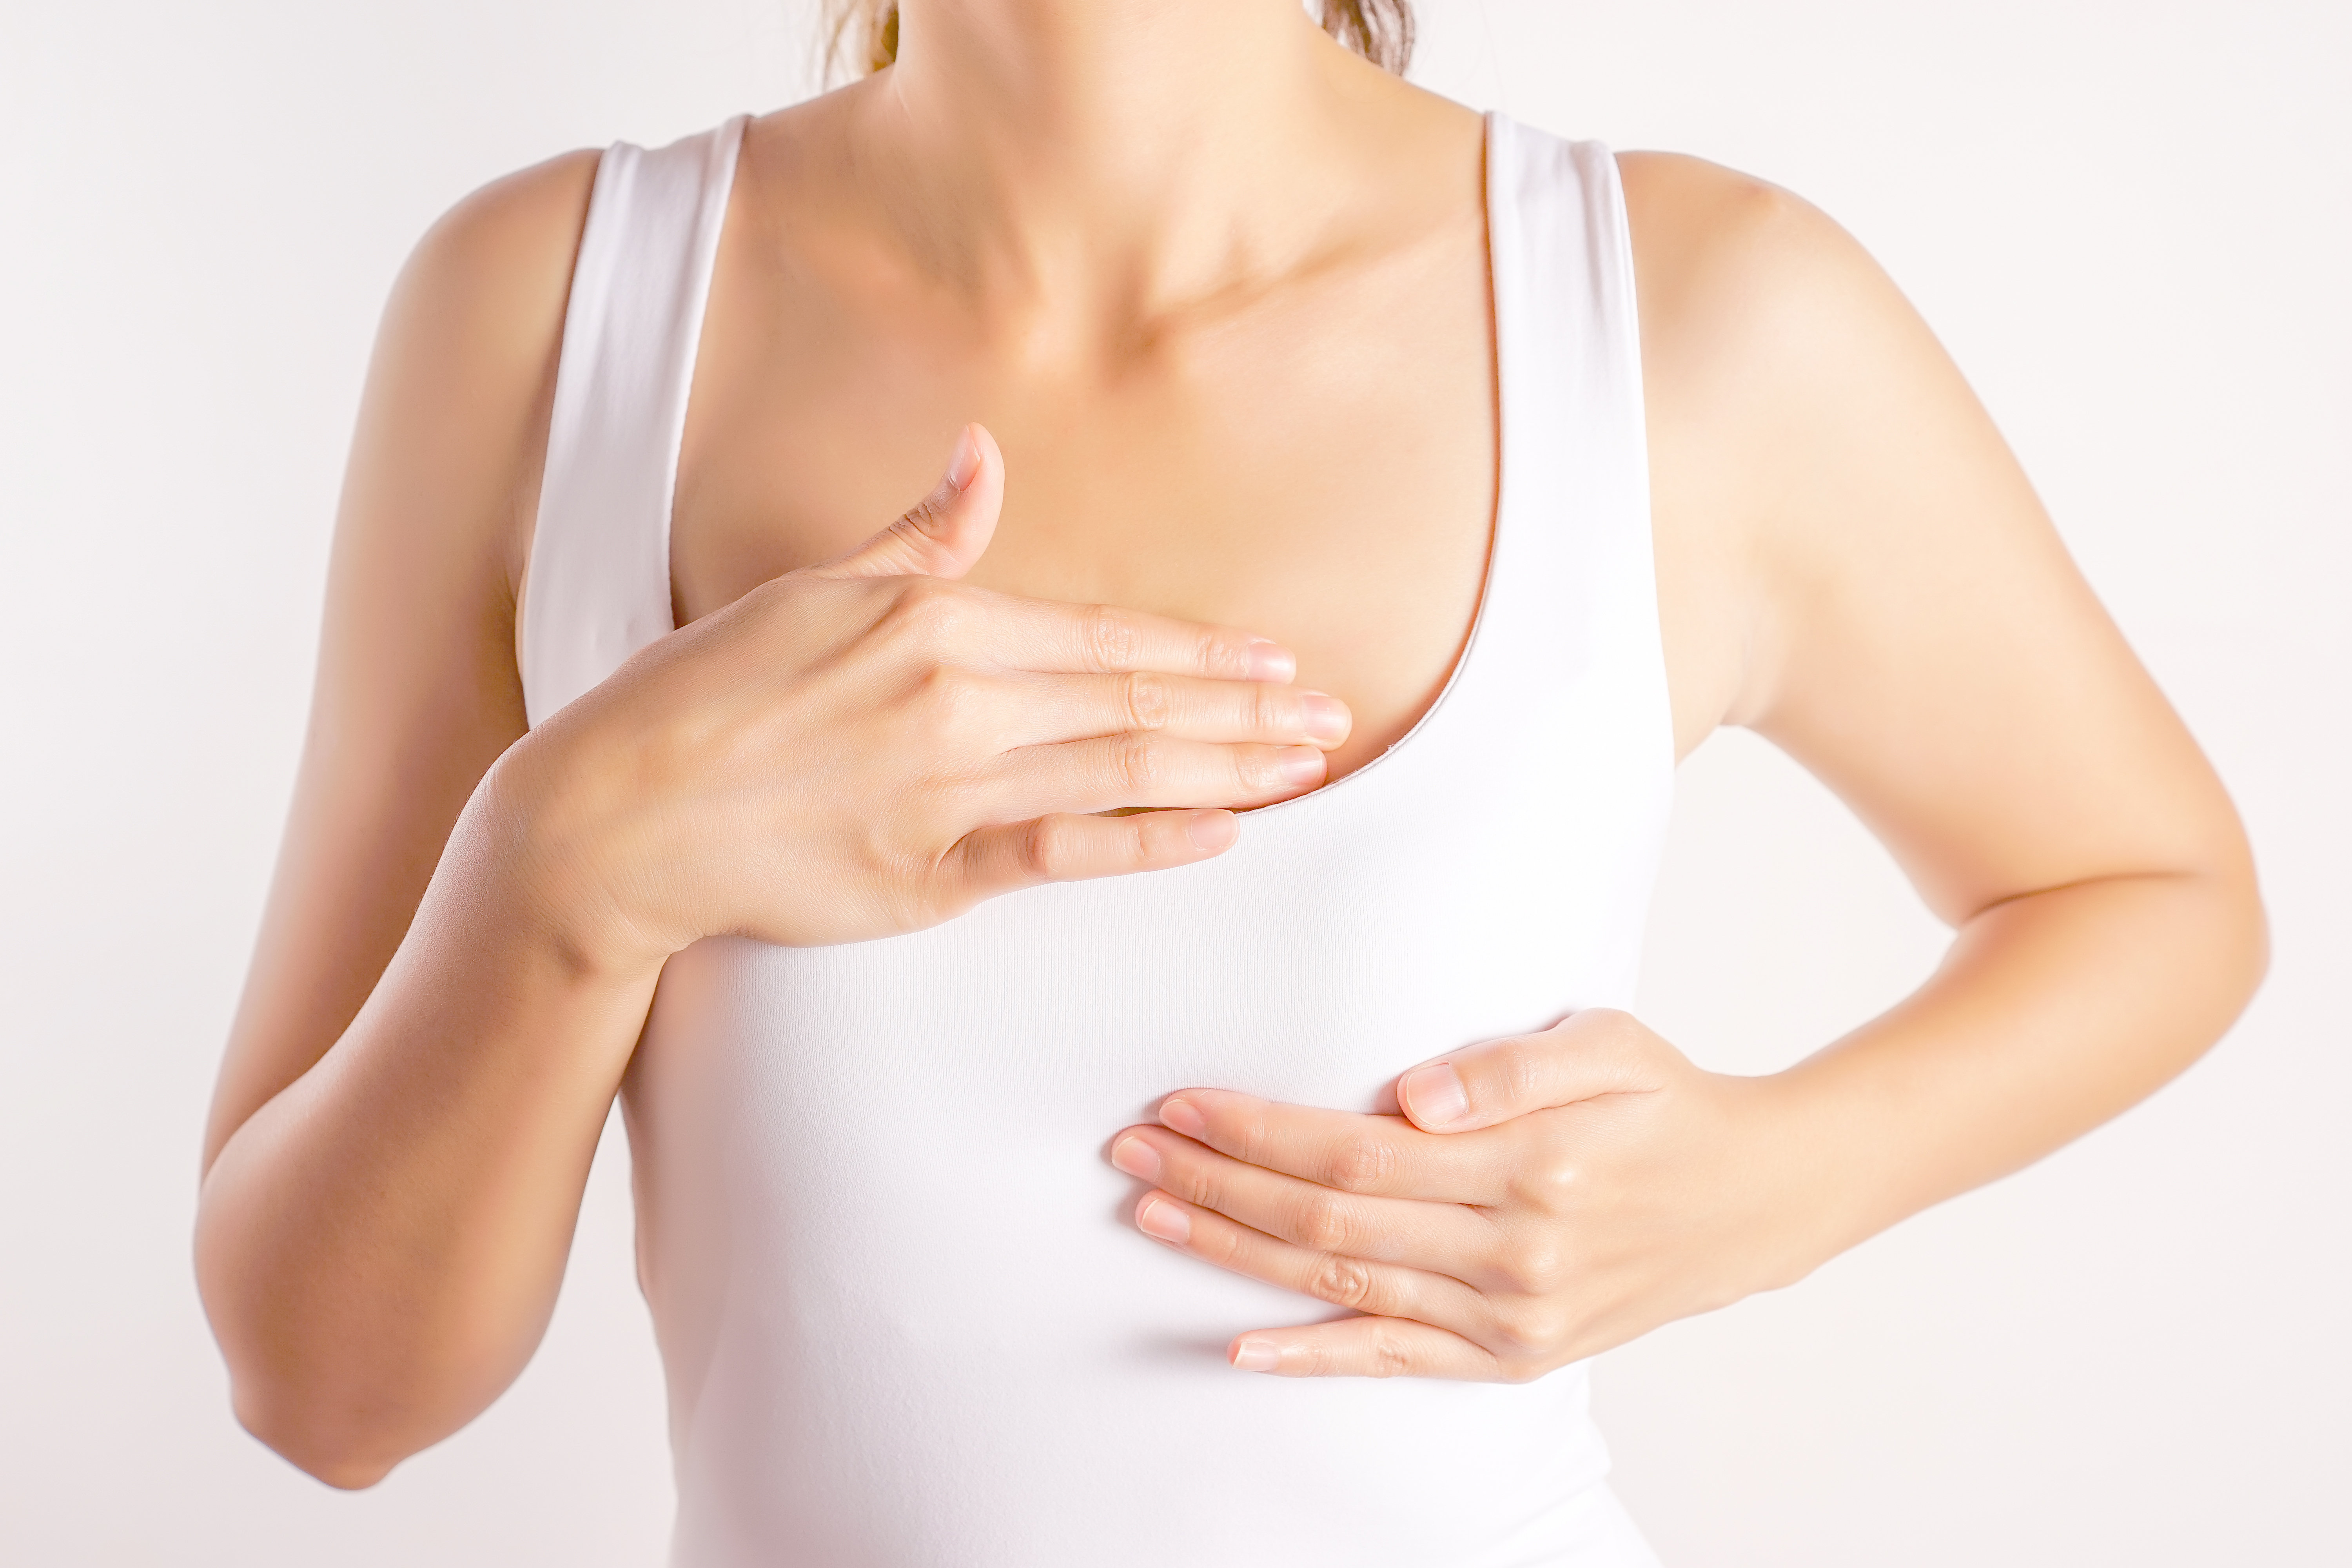 SWELLING IN YOUR BREAST